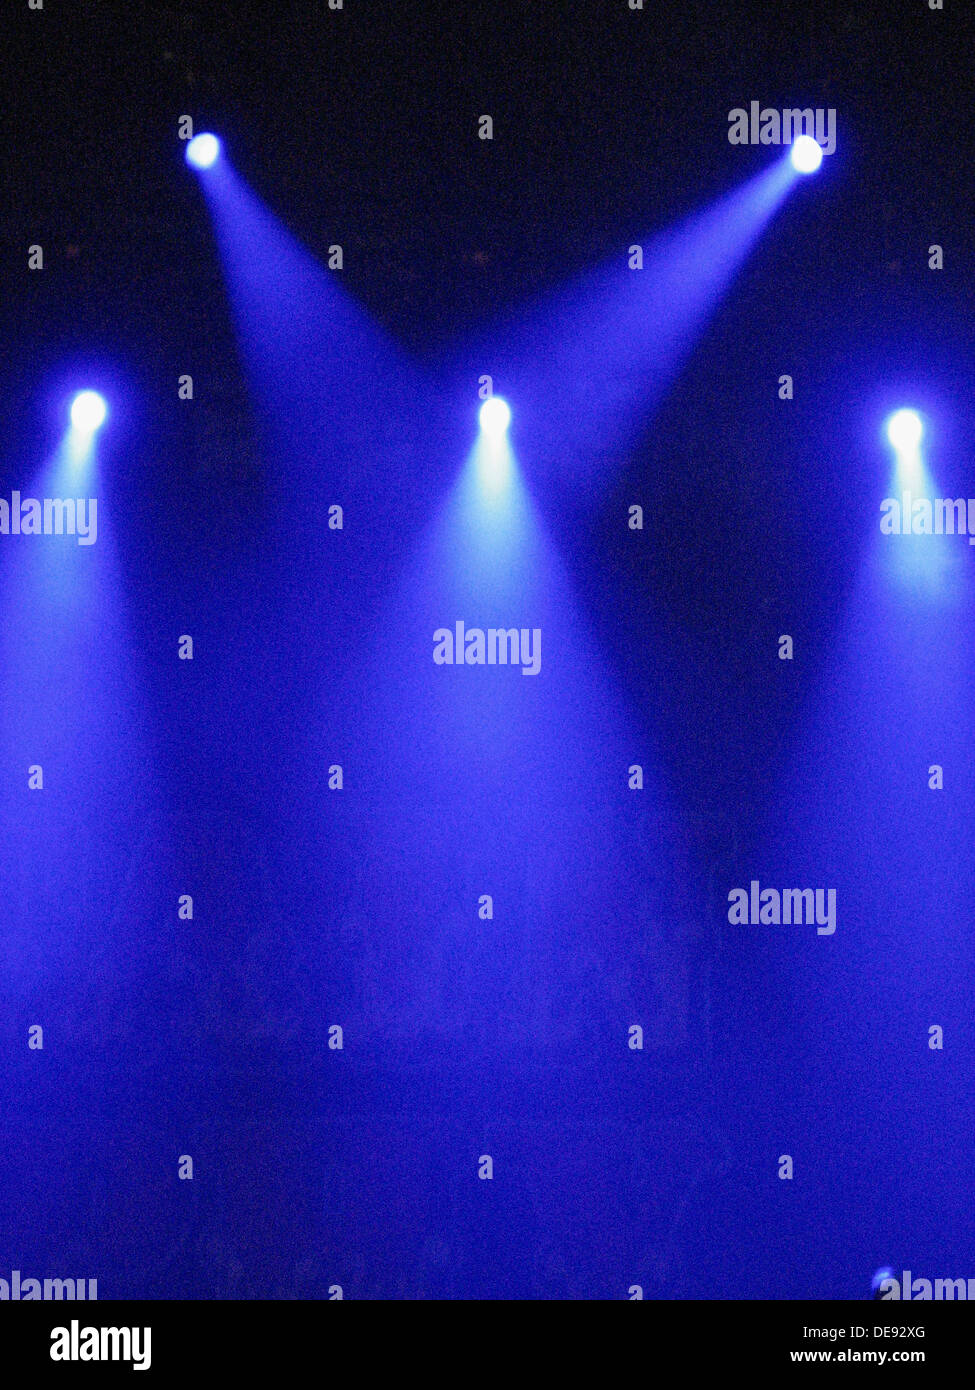 Blue Stage Lights - Stock Image